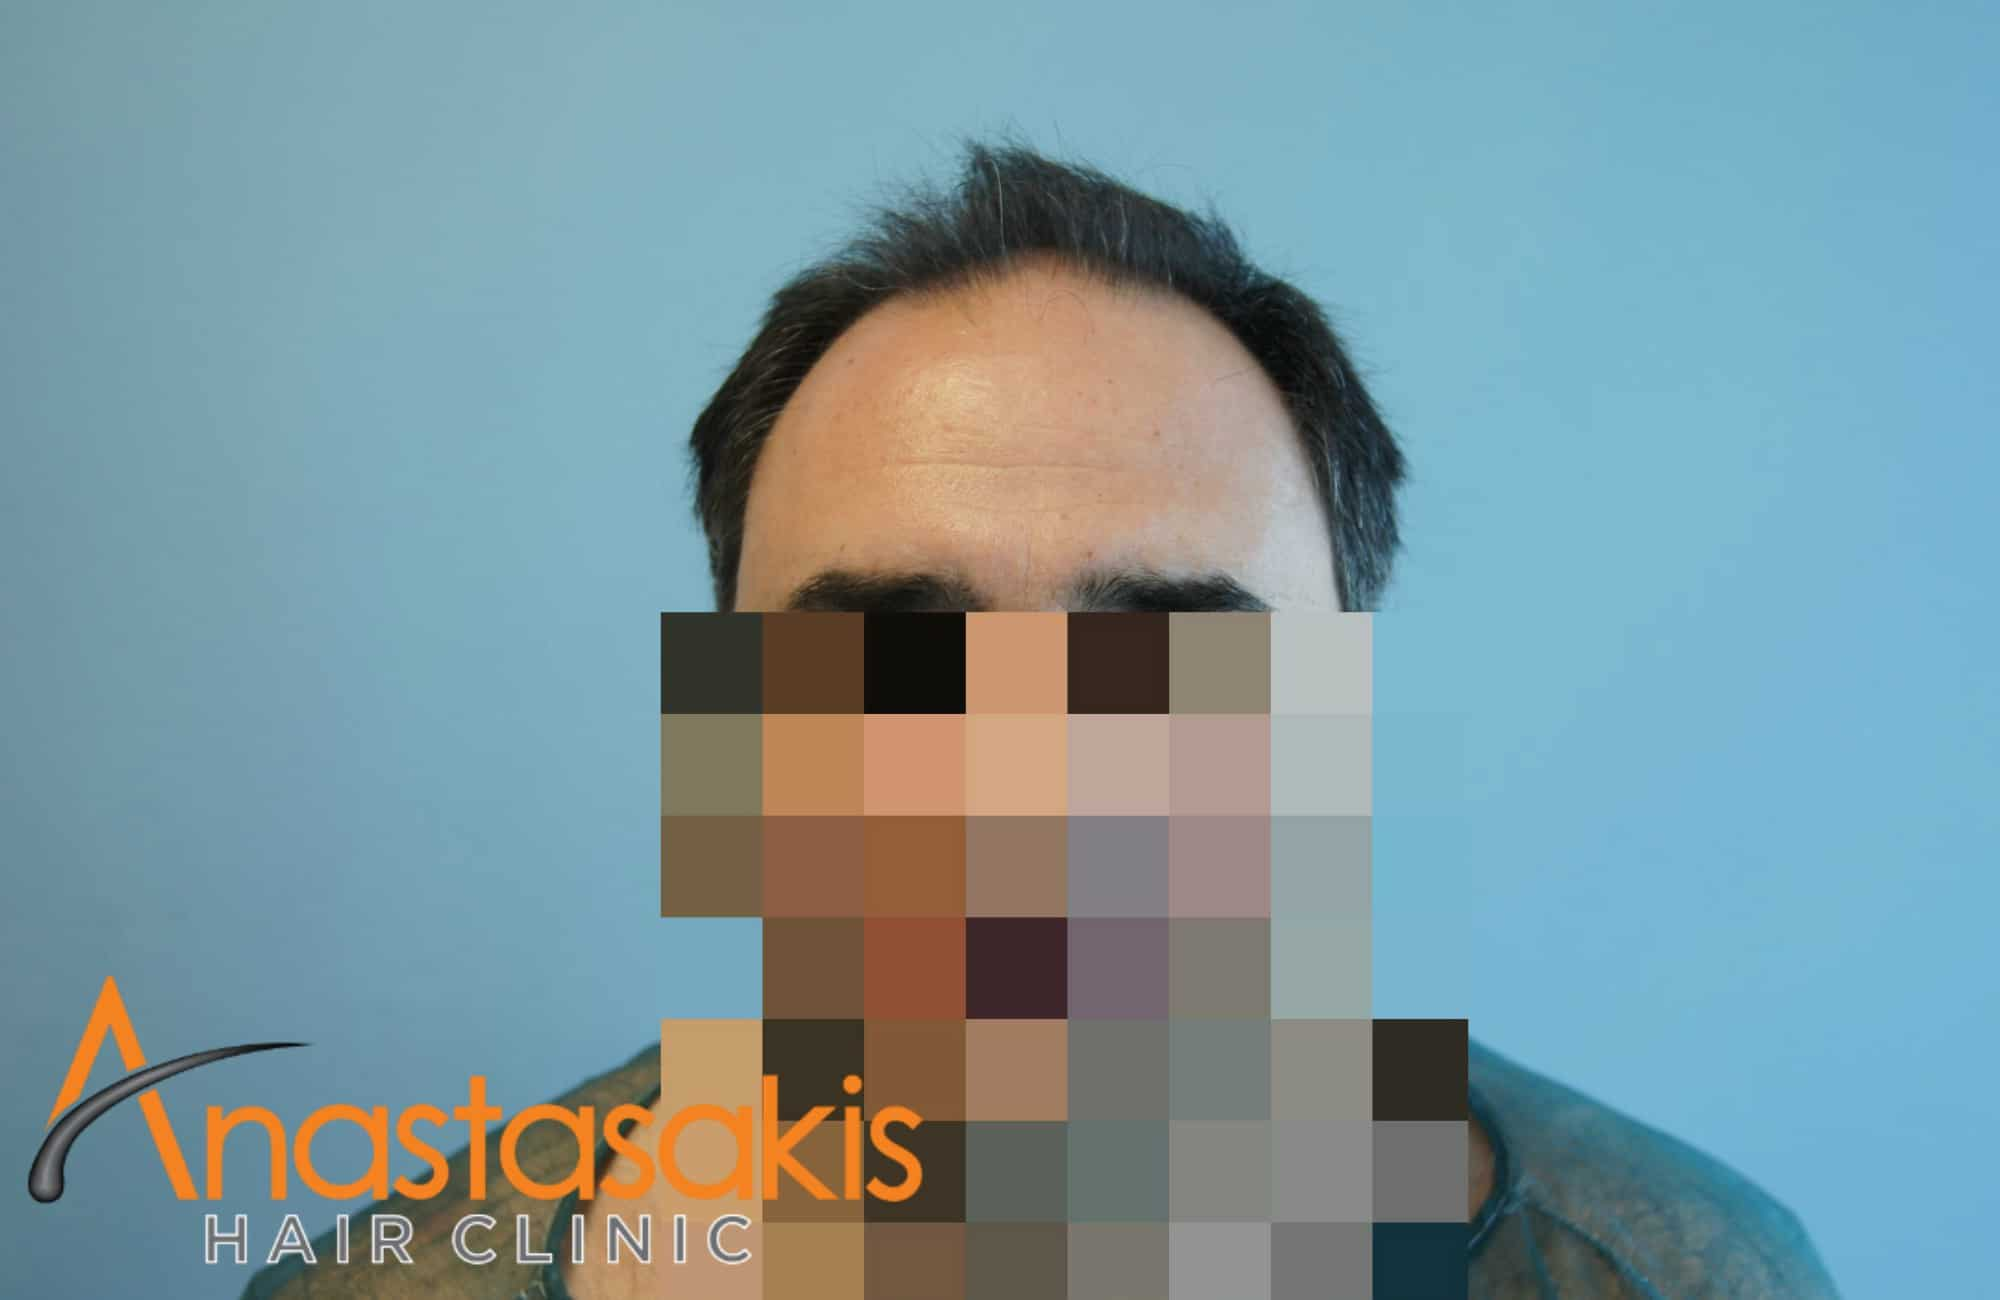 3000 fus anastasakis hair clinic result 12 months